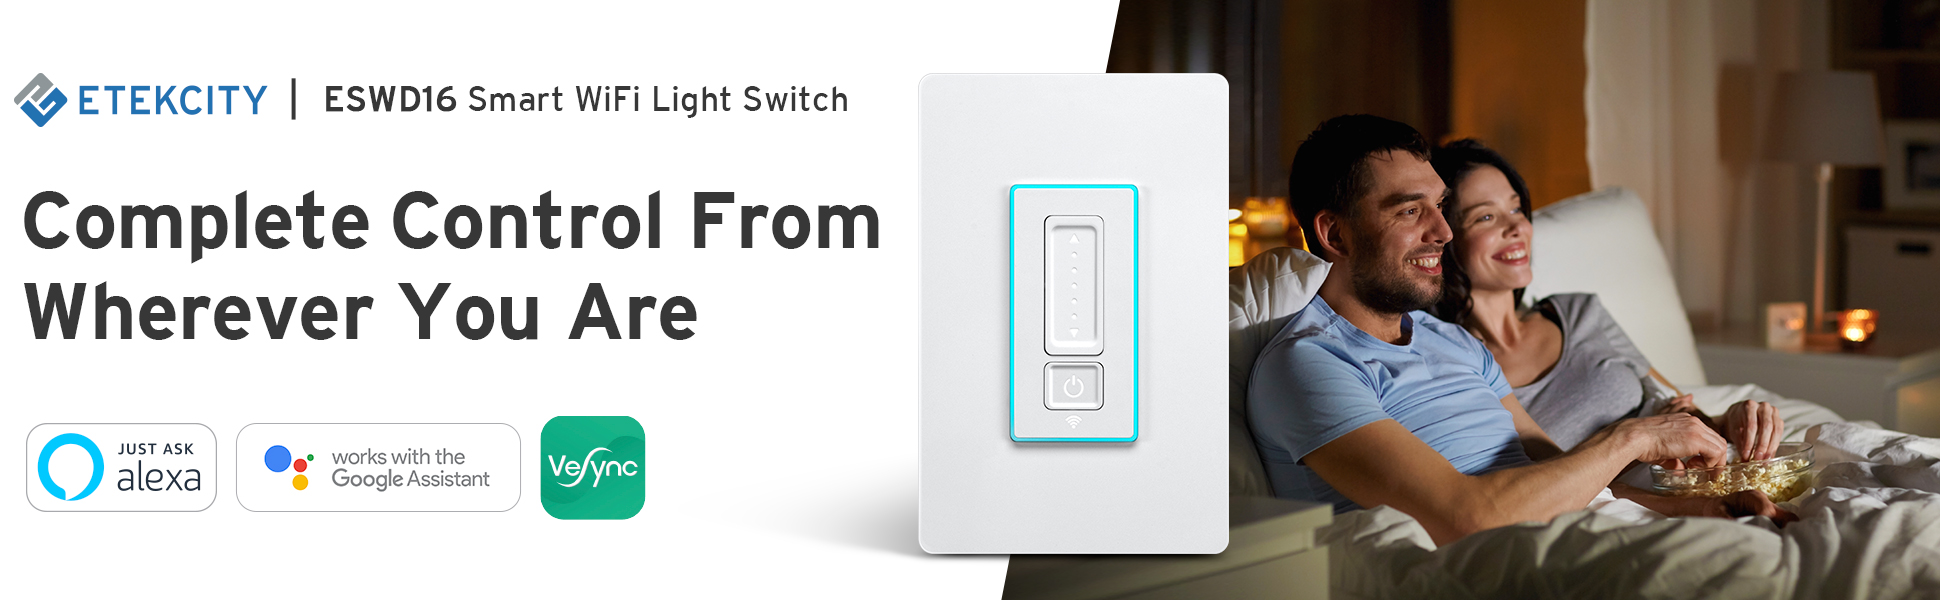 1.00_AP_HTHOHIHT30D_ESWD16_Smart-WiFi-Dimmer-Switch_01.jpg